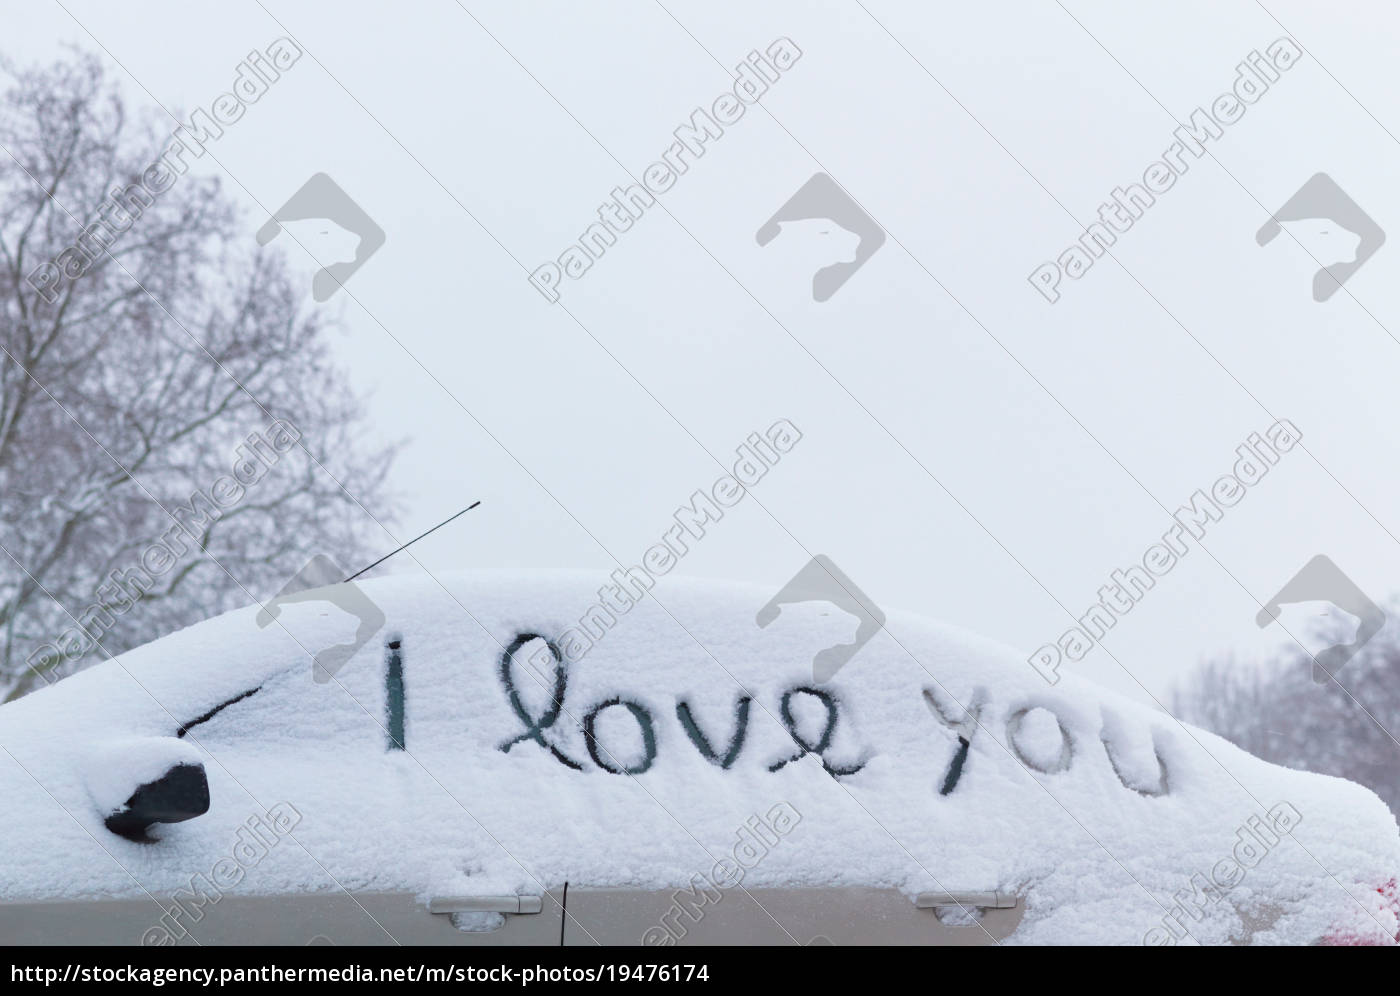 'i, love, you', drawn, in, snow - 19476174